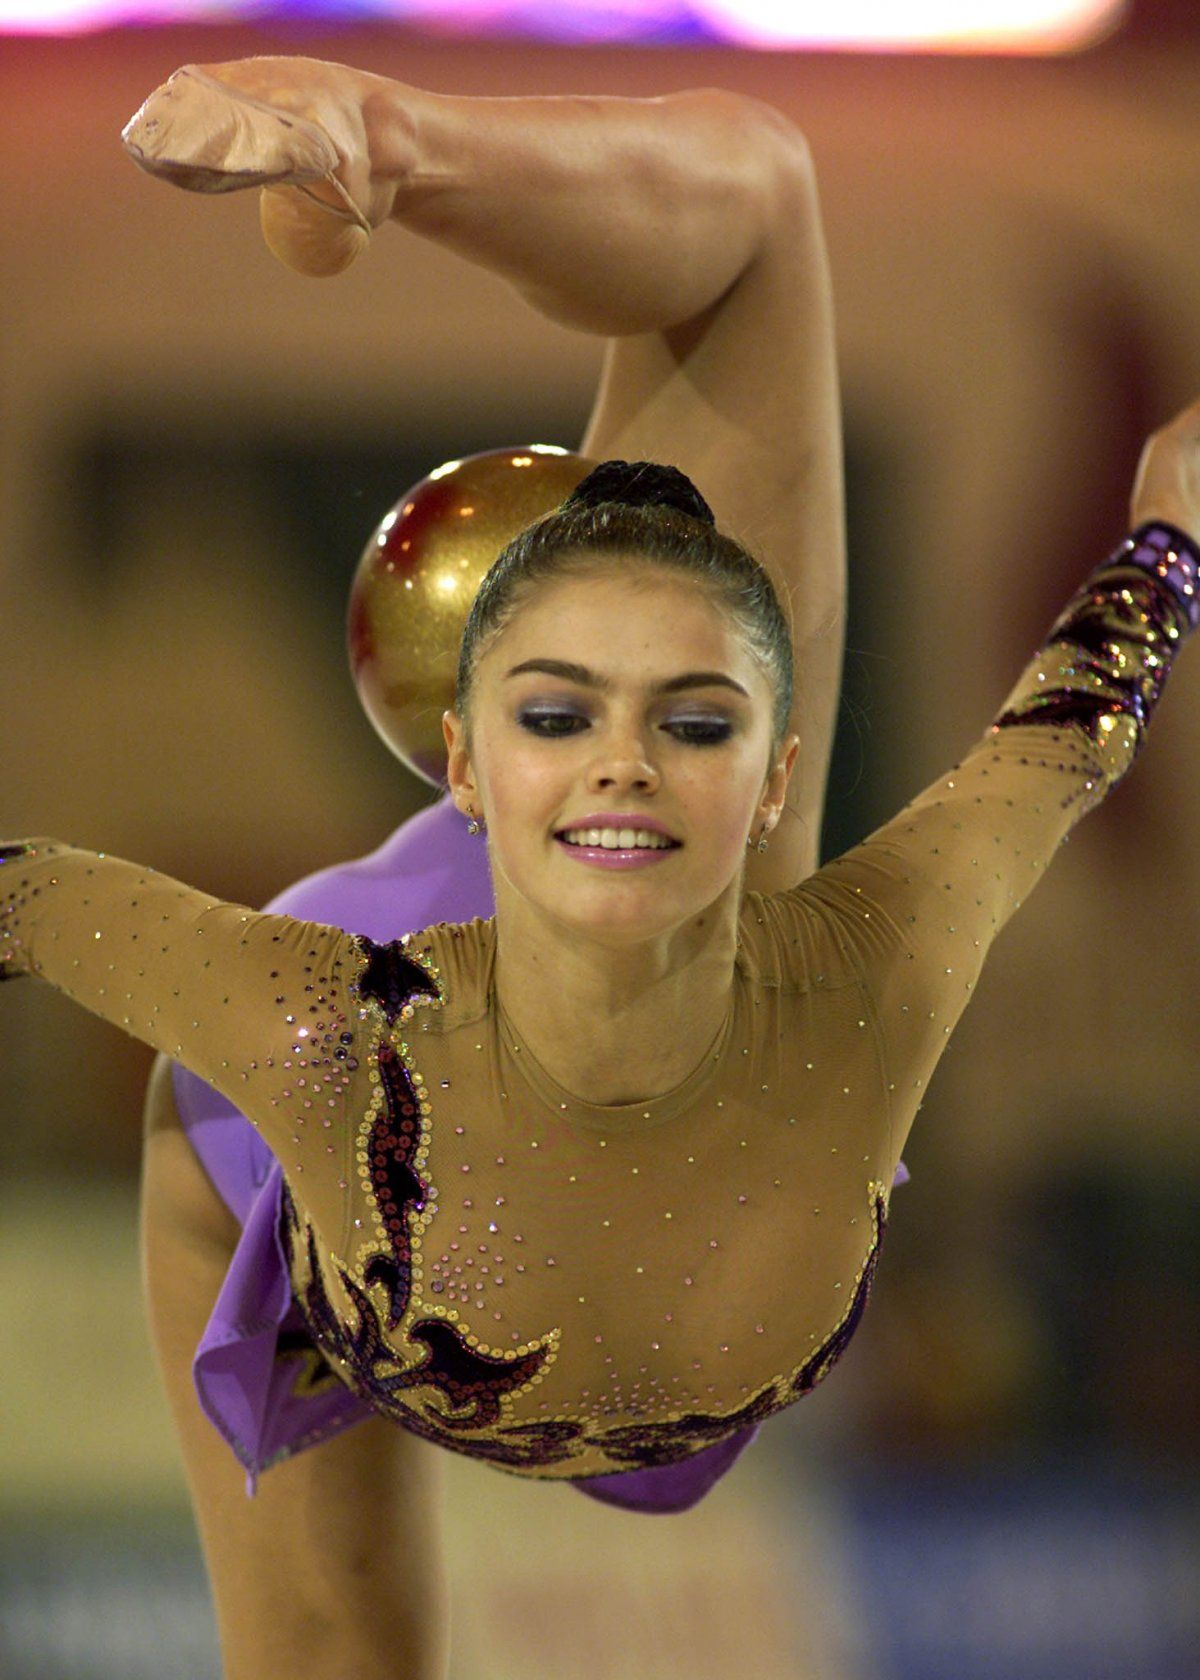 The thinner Alina Kabaeva impressed the public in Sochi 10/19/2017